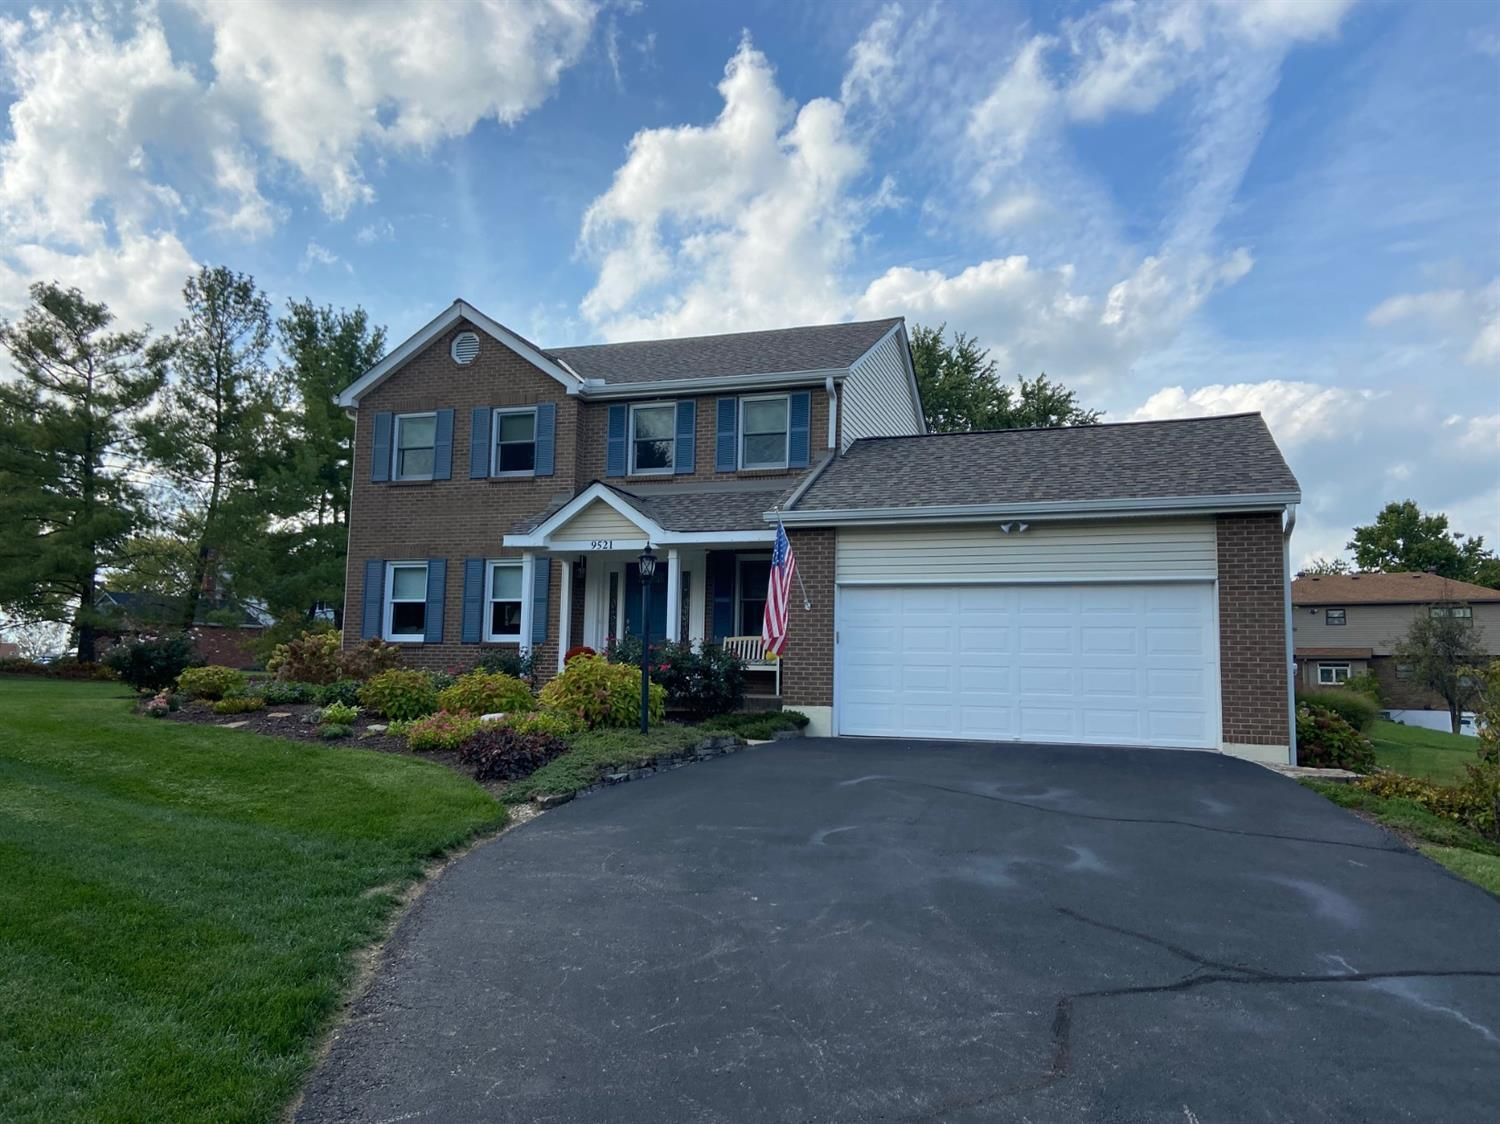 9521 Millbrook Drive, Springfield Twp., Ohio 45231, 4 Bedrooms Bedrooms, 10 Rooms Rooms,2 BathroomsBathrooms,Single Family Residence,For Sale,Millbrook,1719237